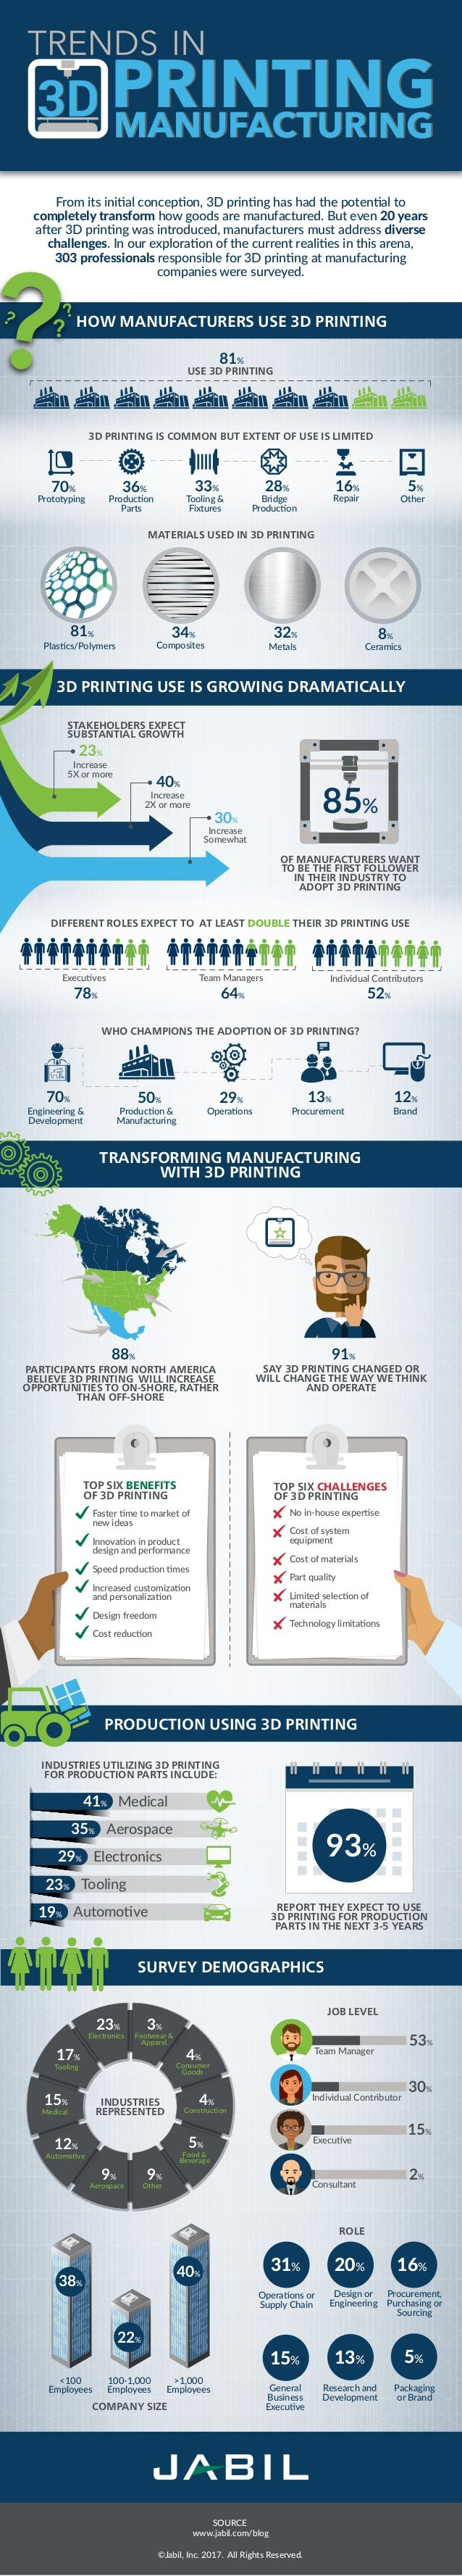 TRANSFORMING MANUFACTURING WITH 3D PRINTING PRODUCTION USING 3D PRINTING SURVEY DEMOGRAPHICS �Jabil, Inc. 2017. All Rights...